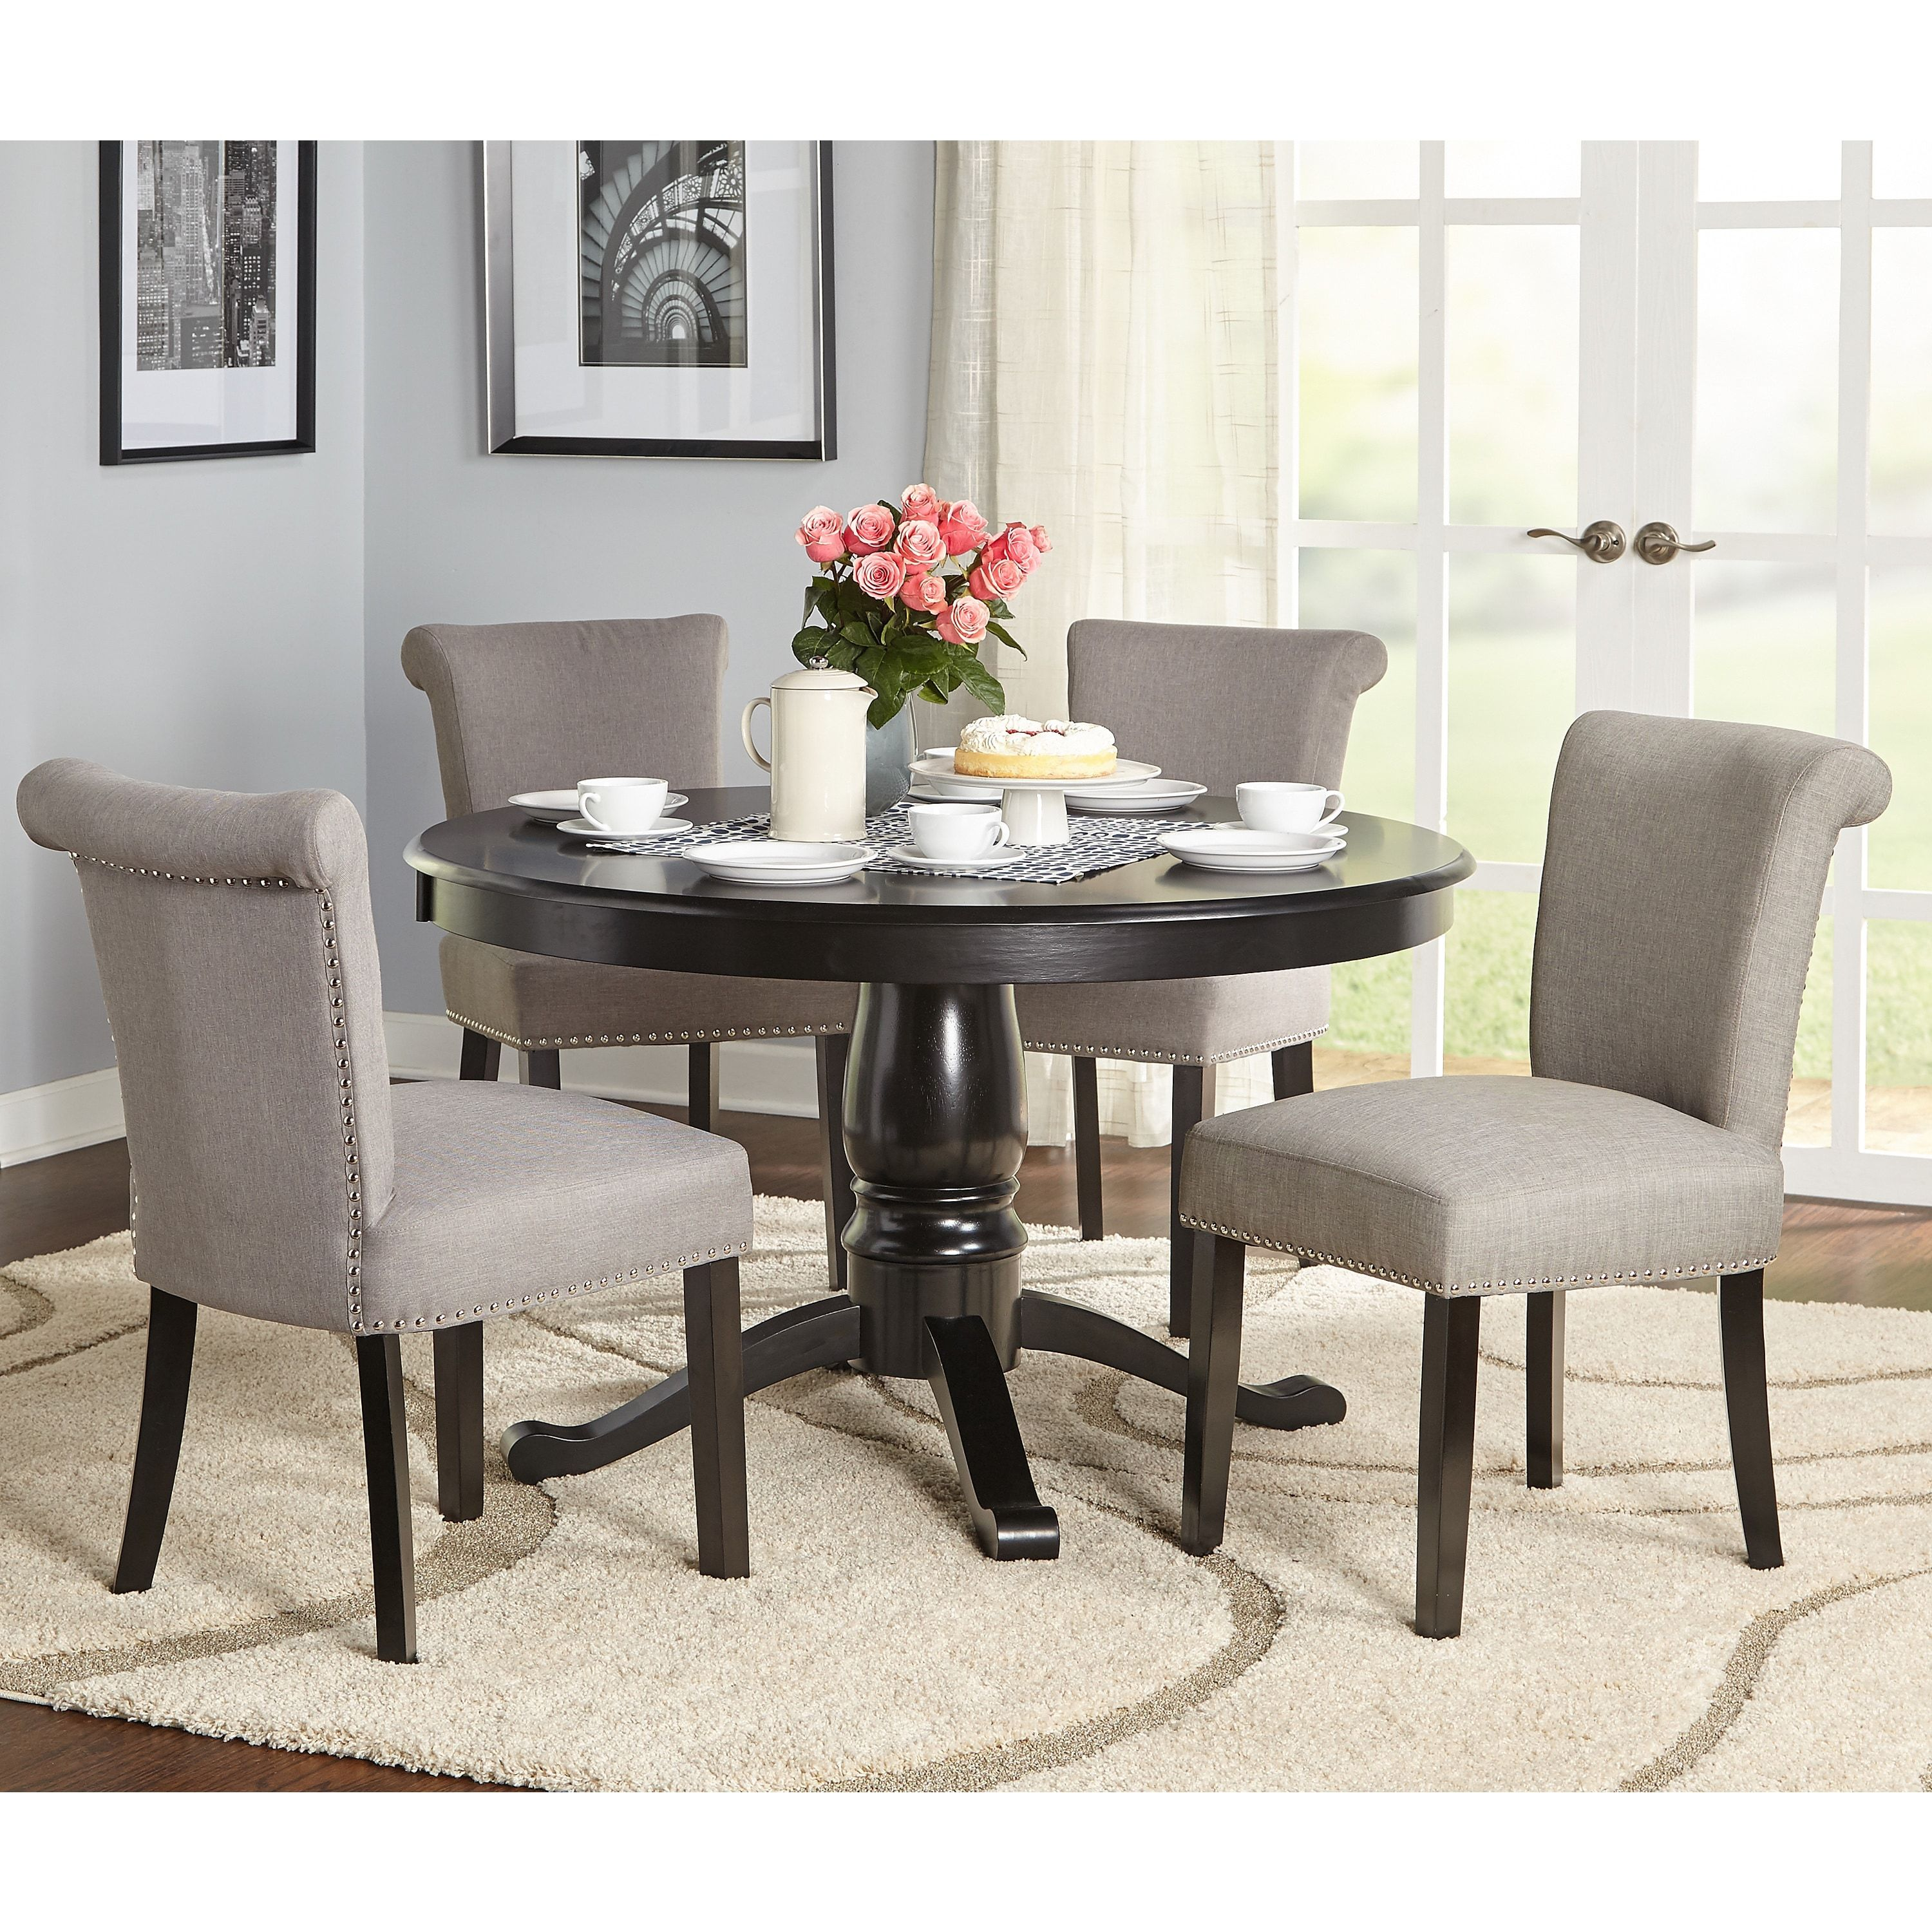 Simple Living 5-Piece Adeline Pedestal Dining Set | Overstock.com Shopping - The  sc 1 st  Pinterest & Simple Living 5-Piece Adeline Pedestal Dining Set | Overstock.com ...